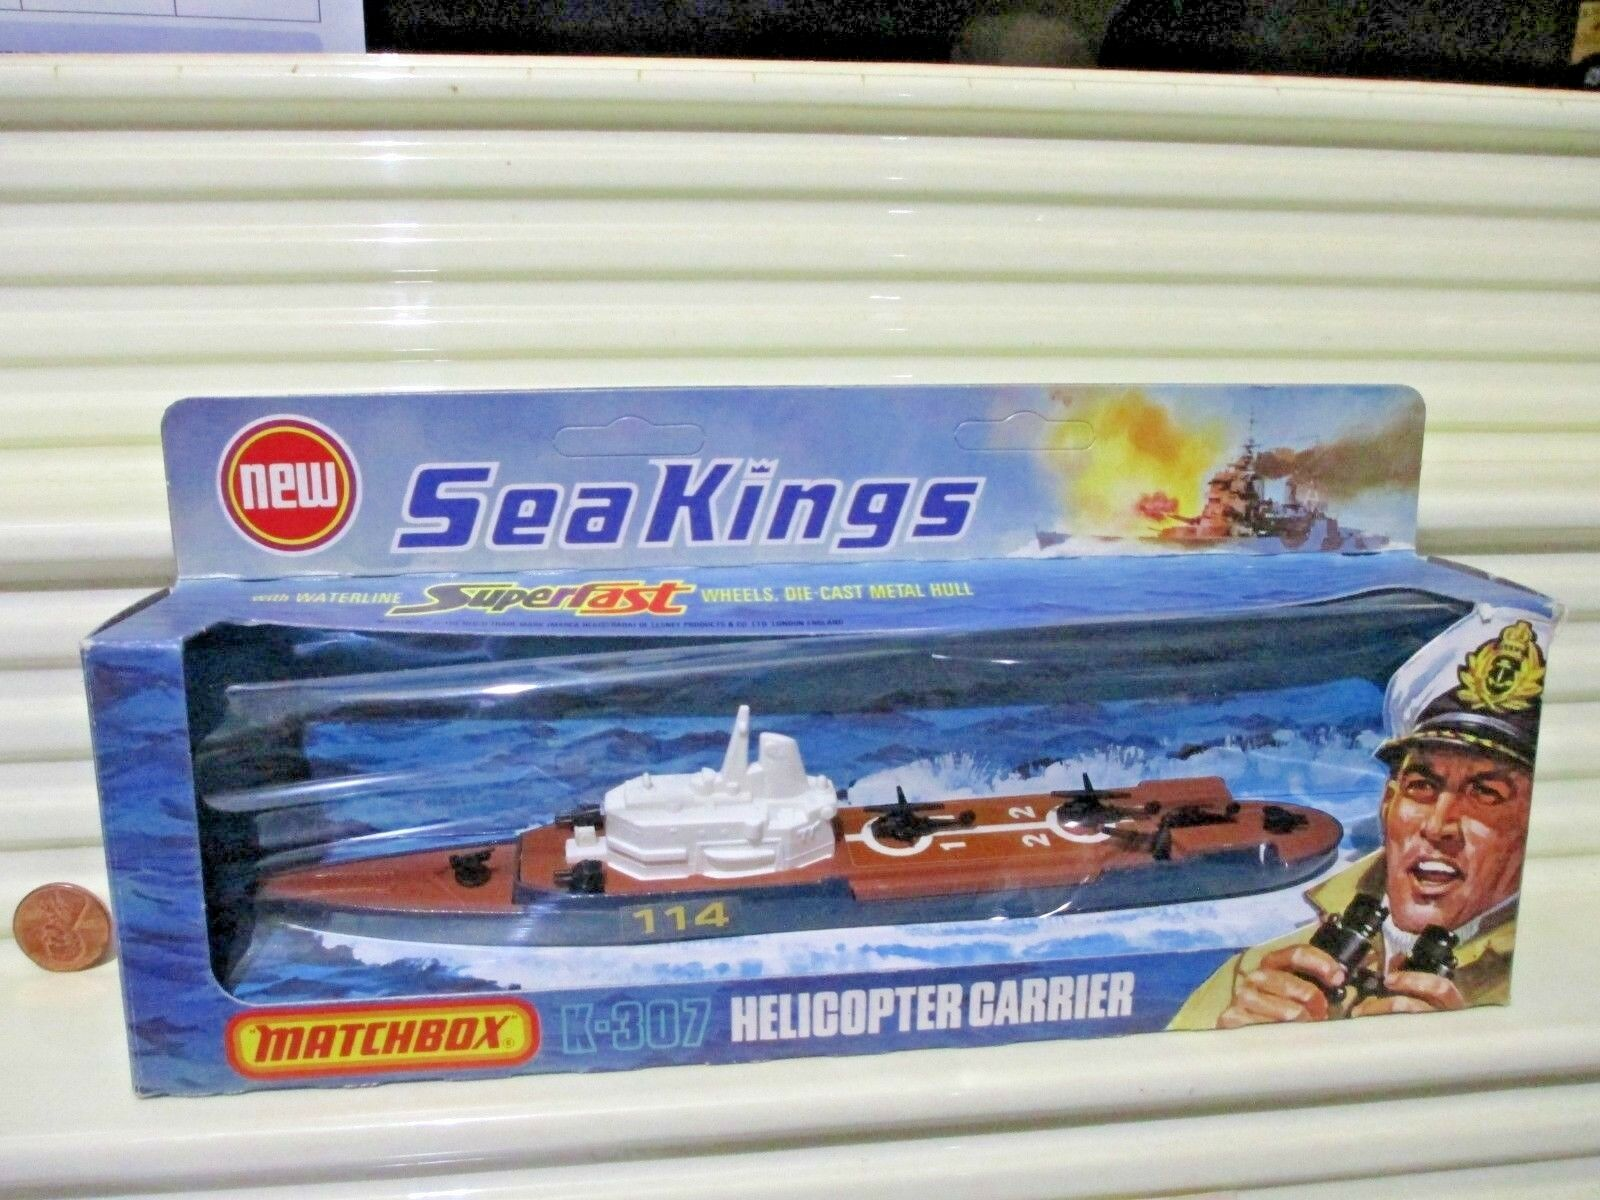 Rare Lesney Matchbox 1975 SEA KINGS K-307 HELICOPTER CARRIER Never Opened NuBoxd